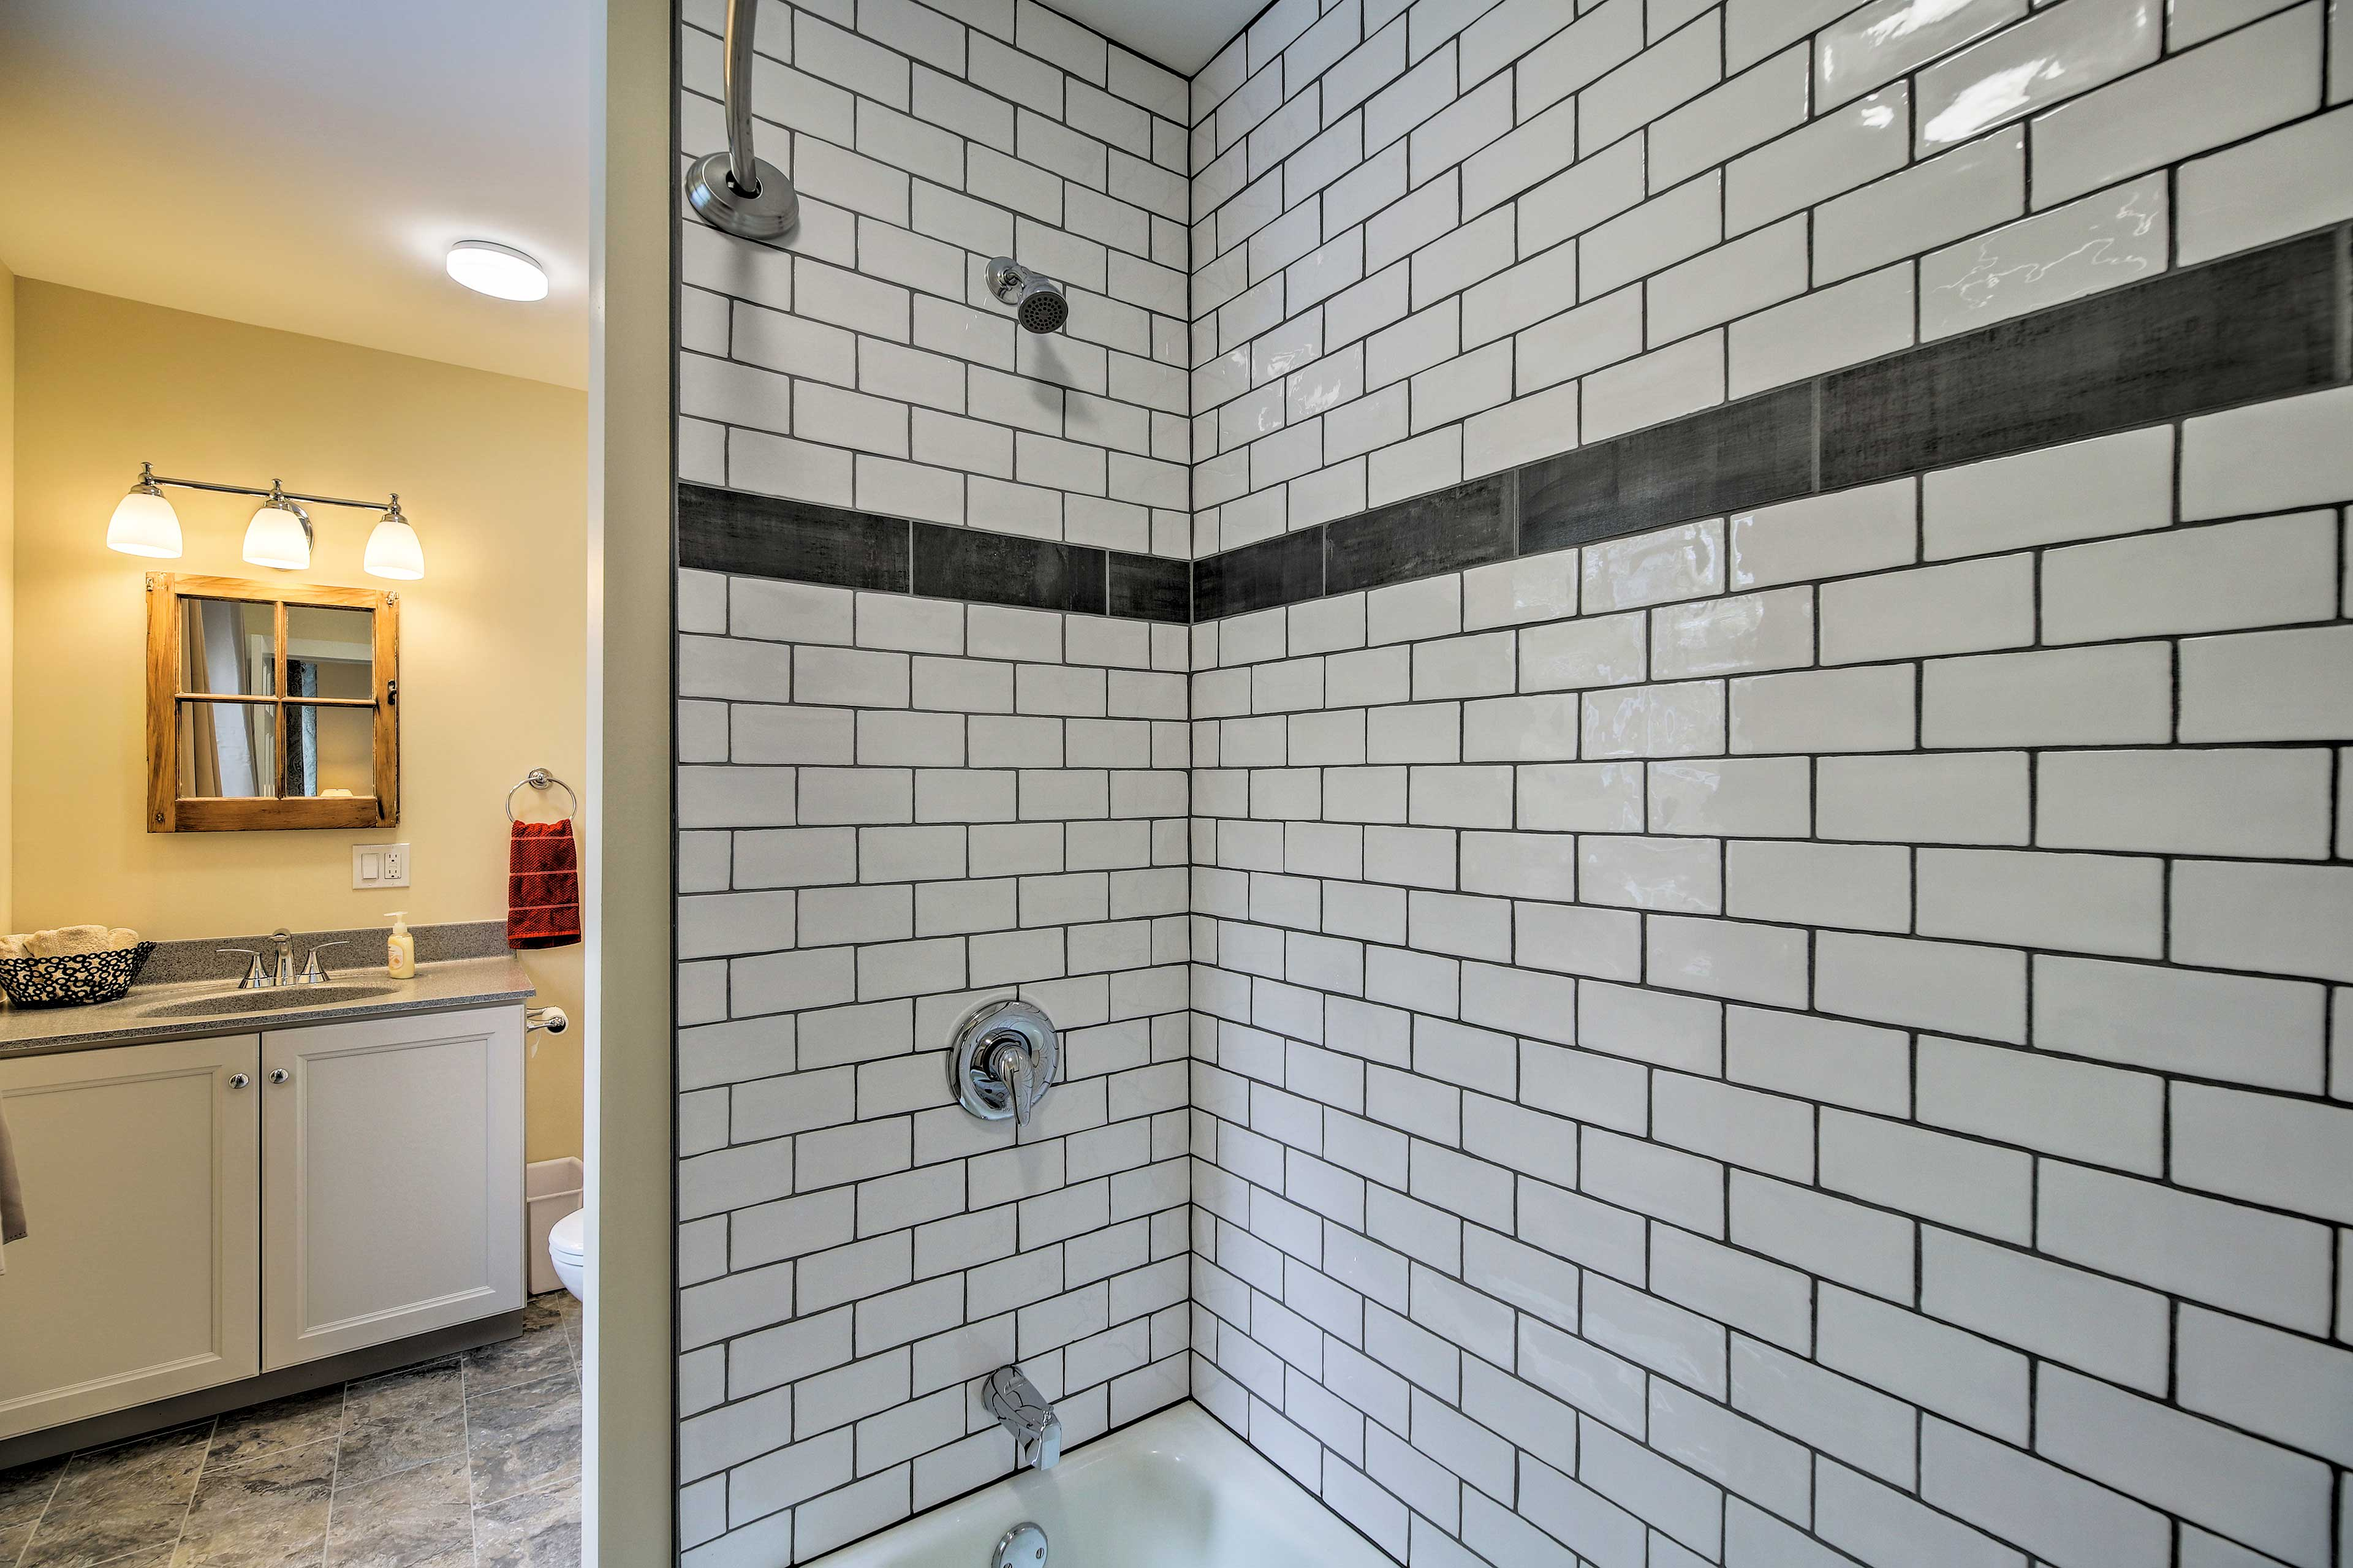 Rinse off the day in the shower of this full bathroom.